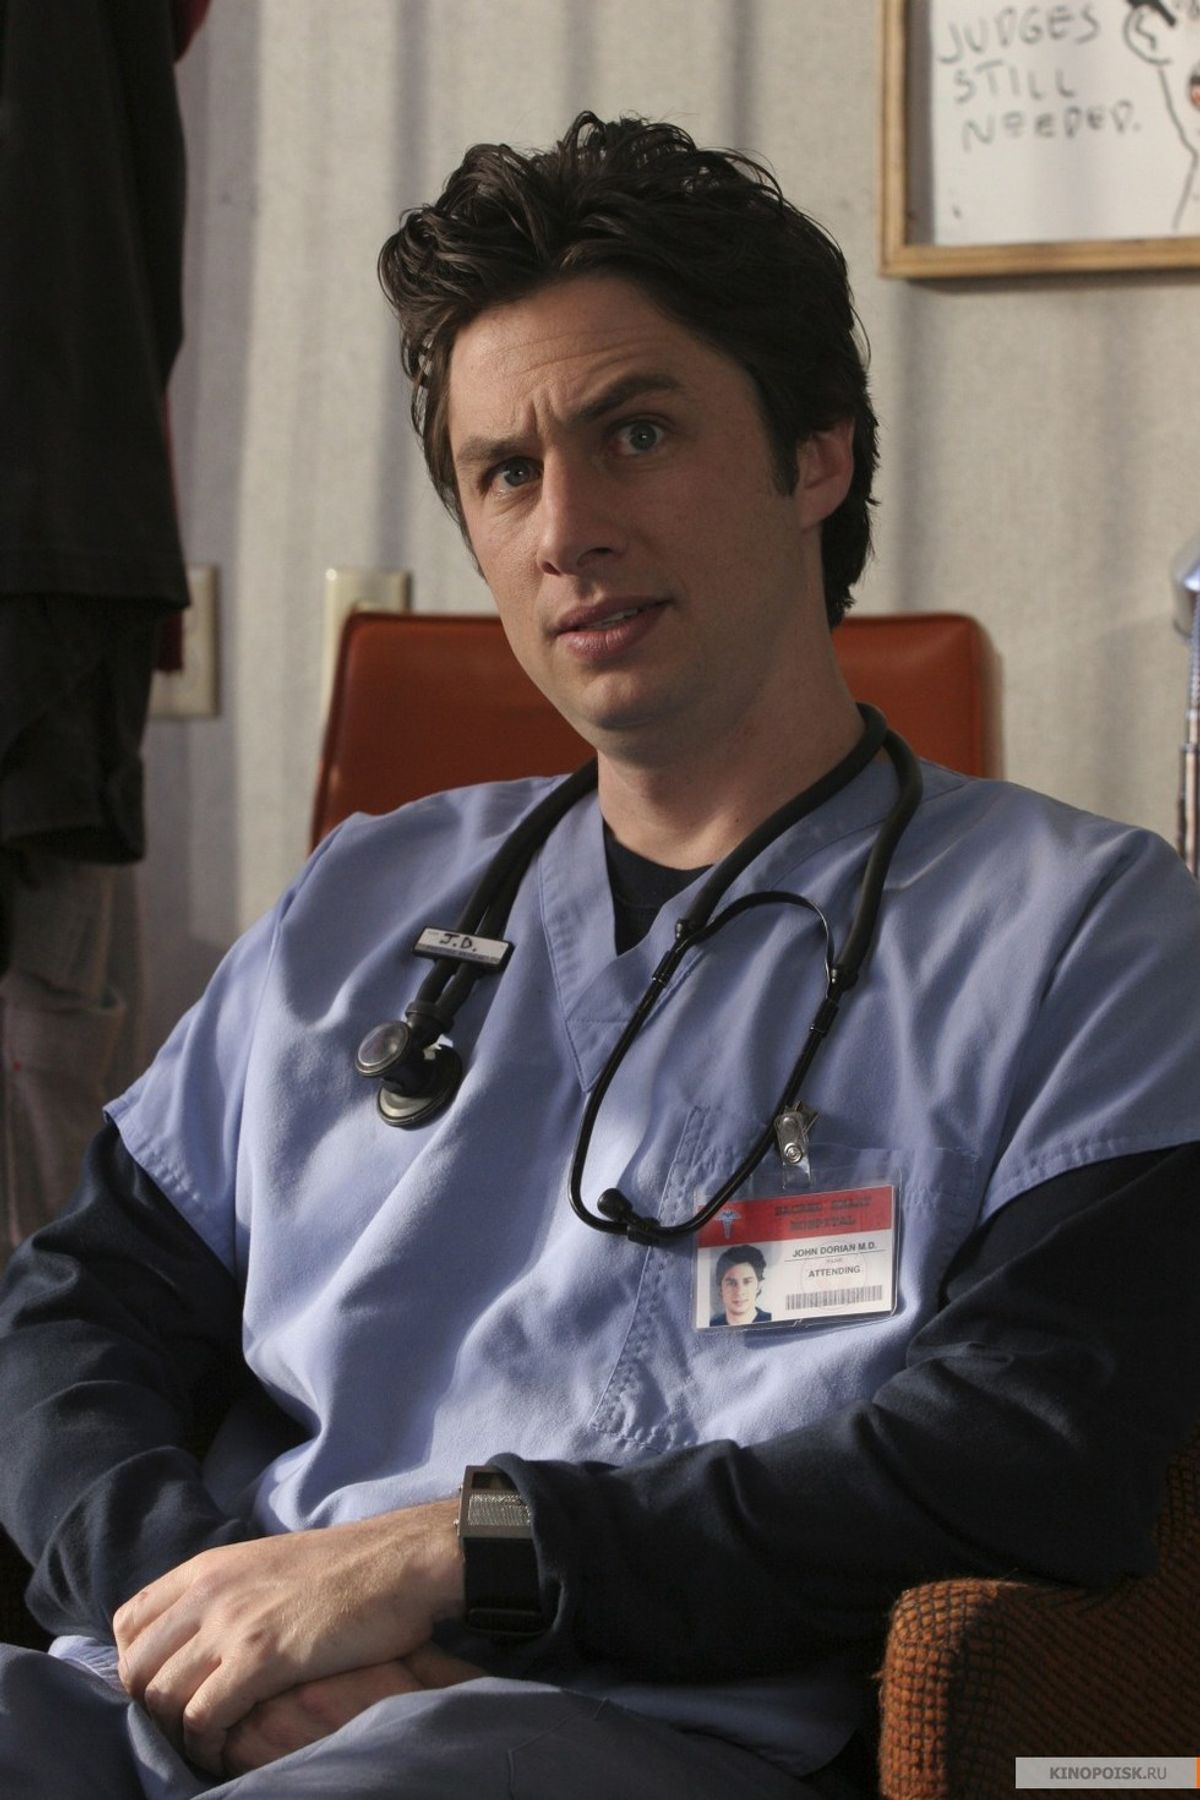 19 Reasons Why Dr. John Dorian from Scrubs Should Be Your Inspiration